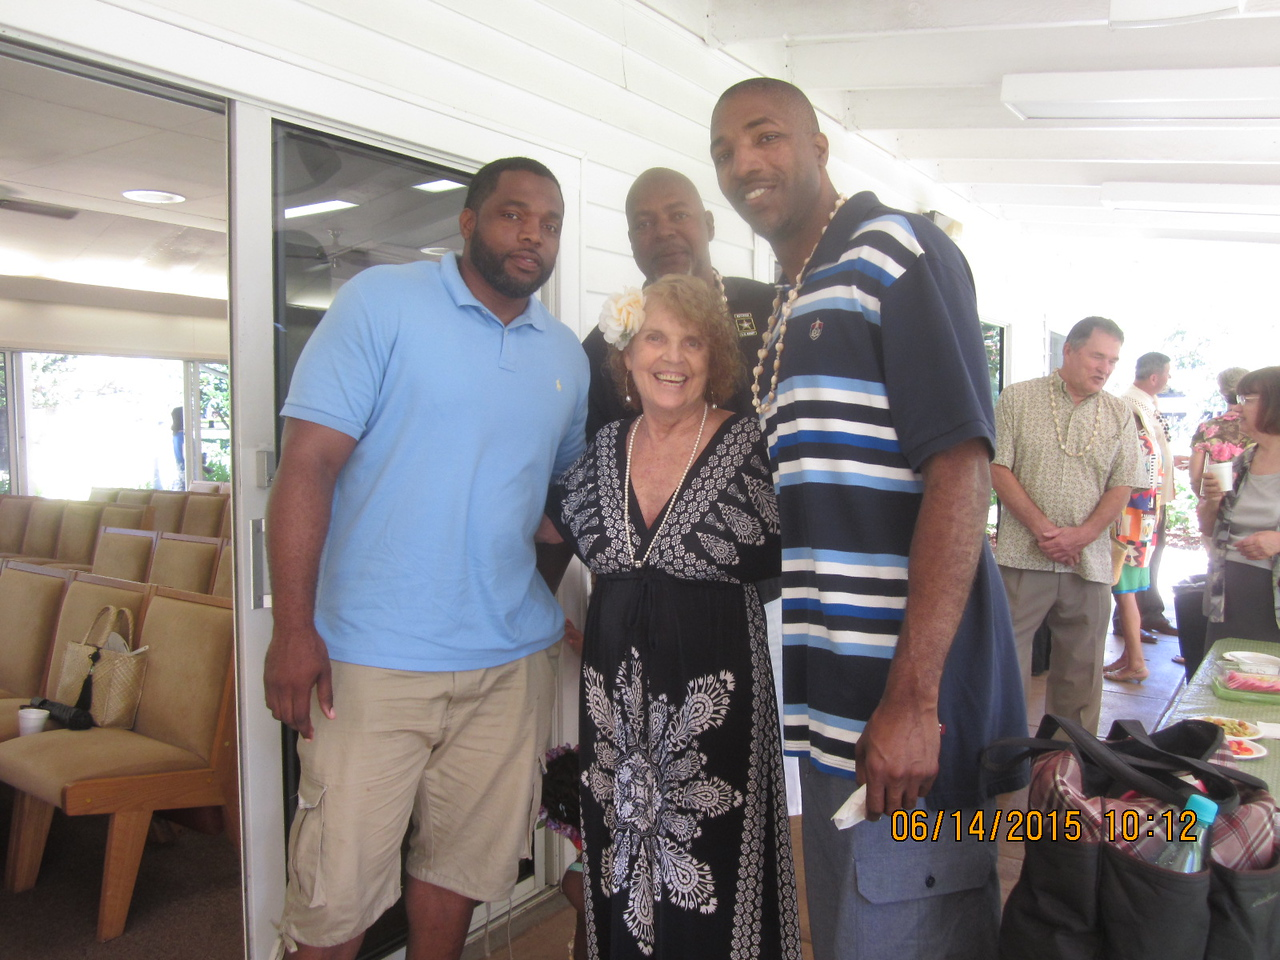 another shot of Lynne with 3 handsome boys..